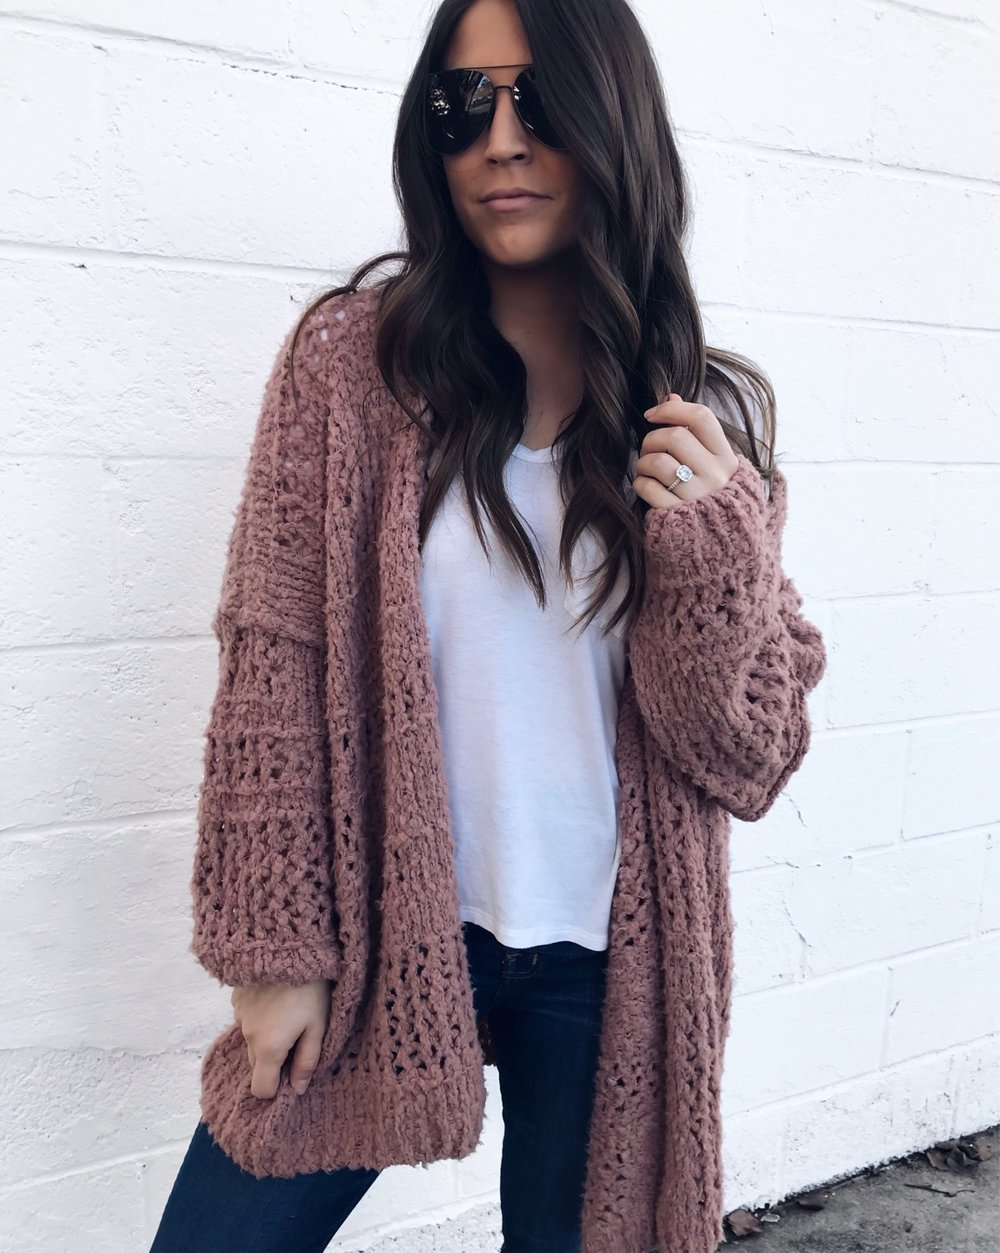 Weekend Sales & Instagram Round Up | Pine Barren Beauty | winter fashion, winter outfit idea, cozy outfit idea, free people cardigan